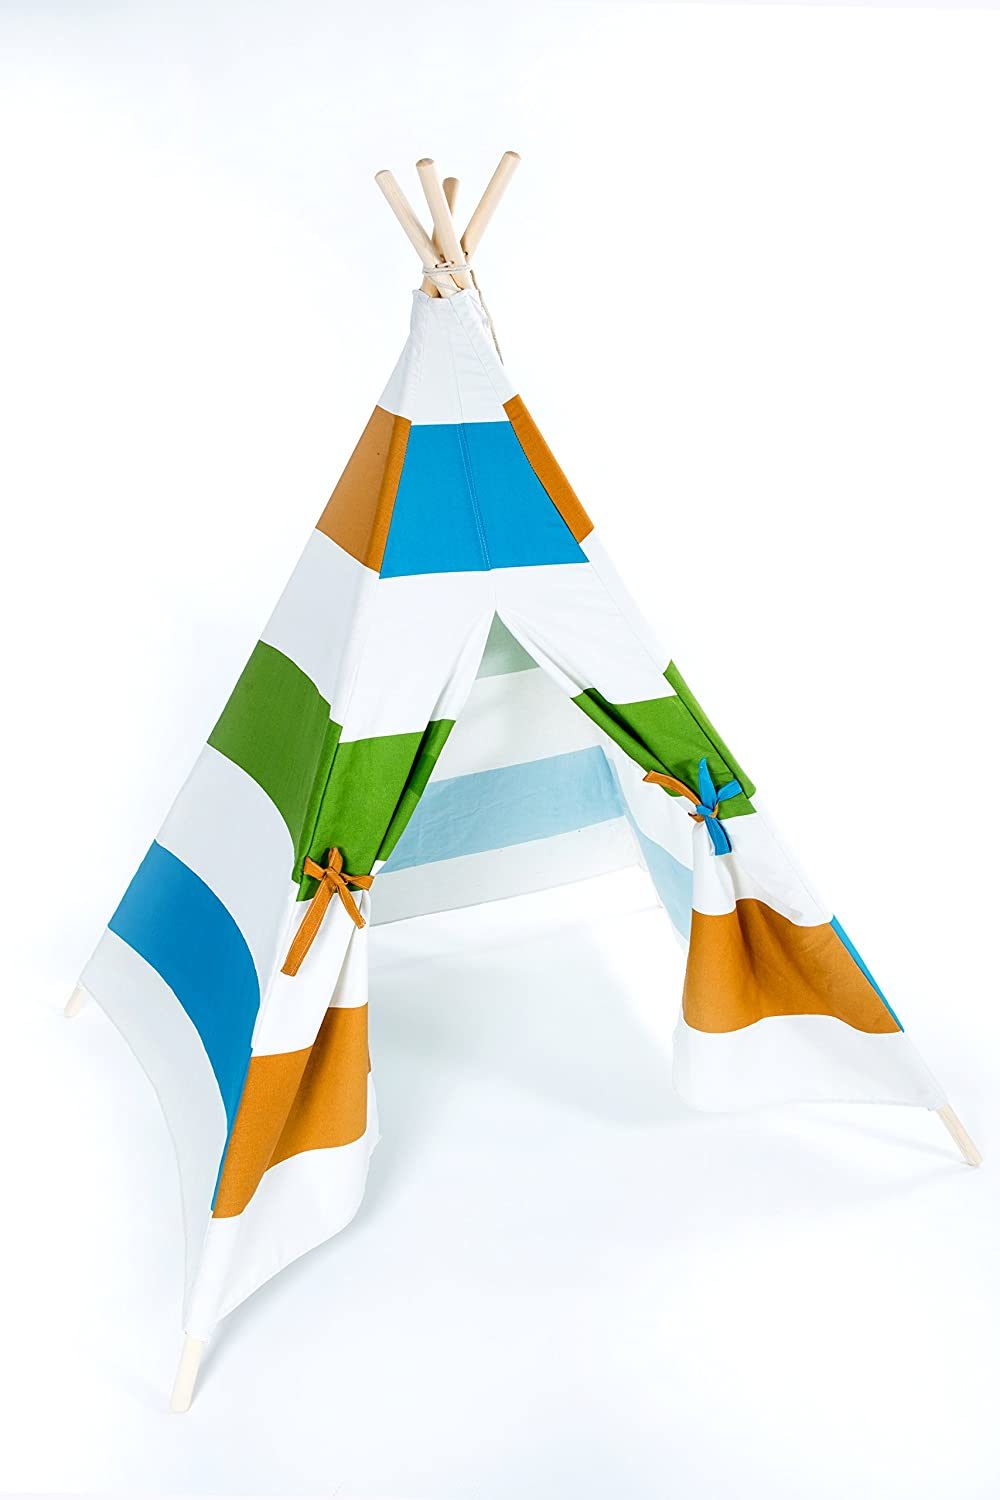 Small boy Kids Teepee Play Tents Indian Playhouse with 4 Wooden Poles 145cm